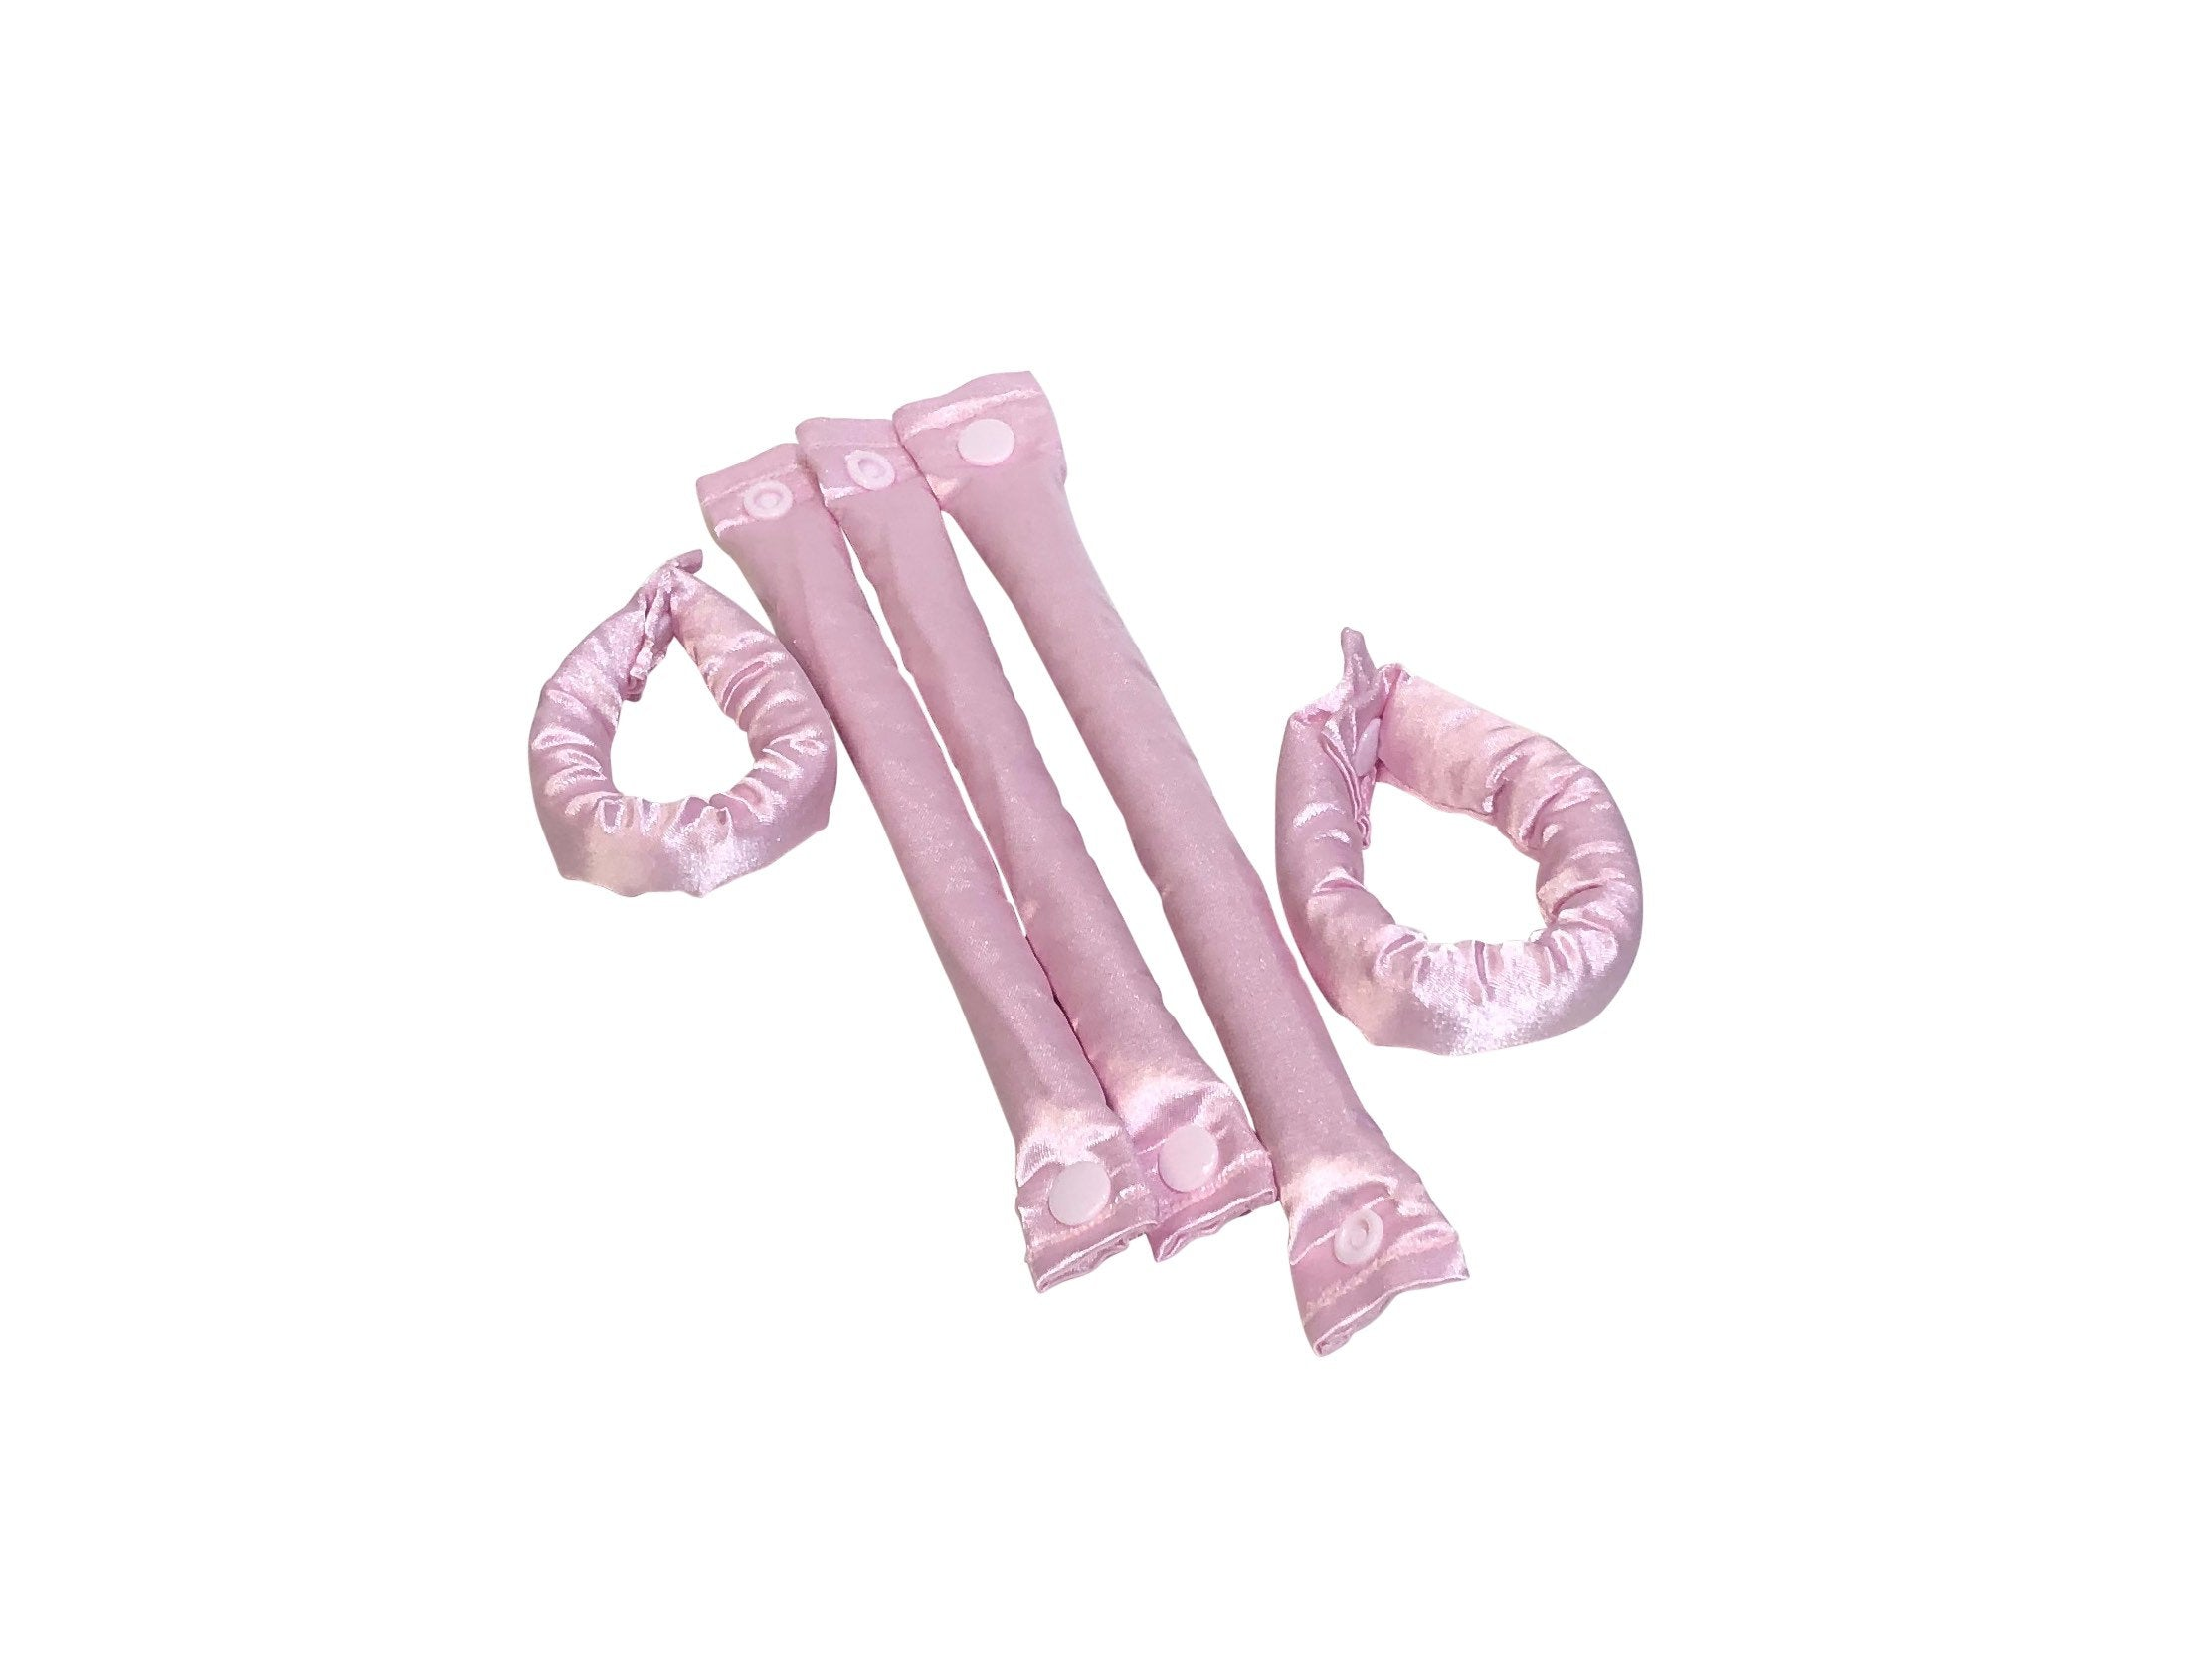 Pale Pink Satin Hair Rollers - Hair Accessories - Soft Hair Curlers - My Easy Curls